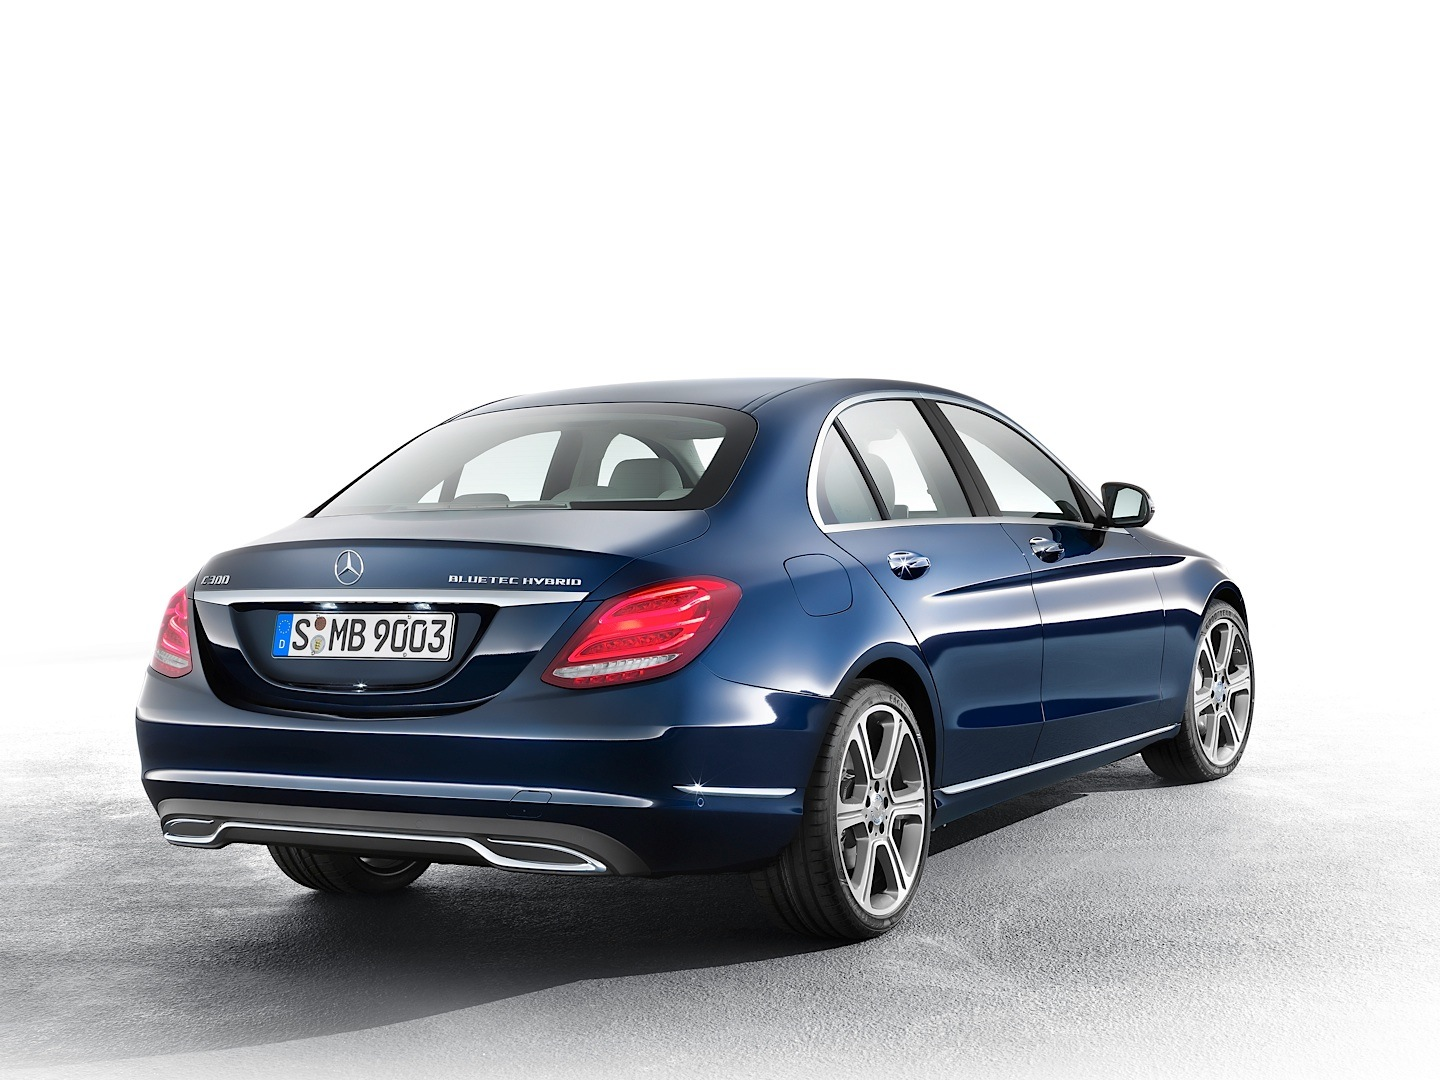 2015 mercedes benz c class w205 officially unveiled autoevolution. Black Bedroom Furniture Sets. Home Design Ideas